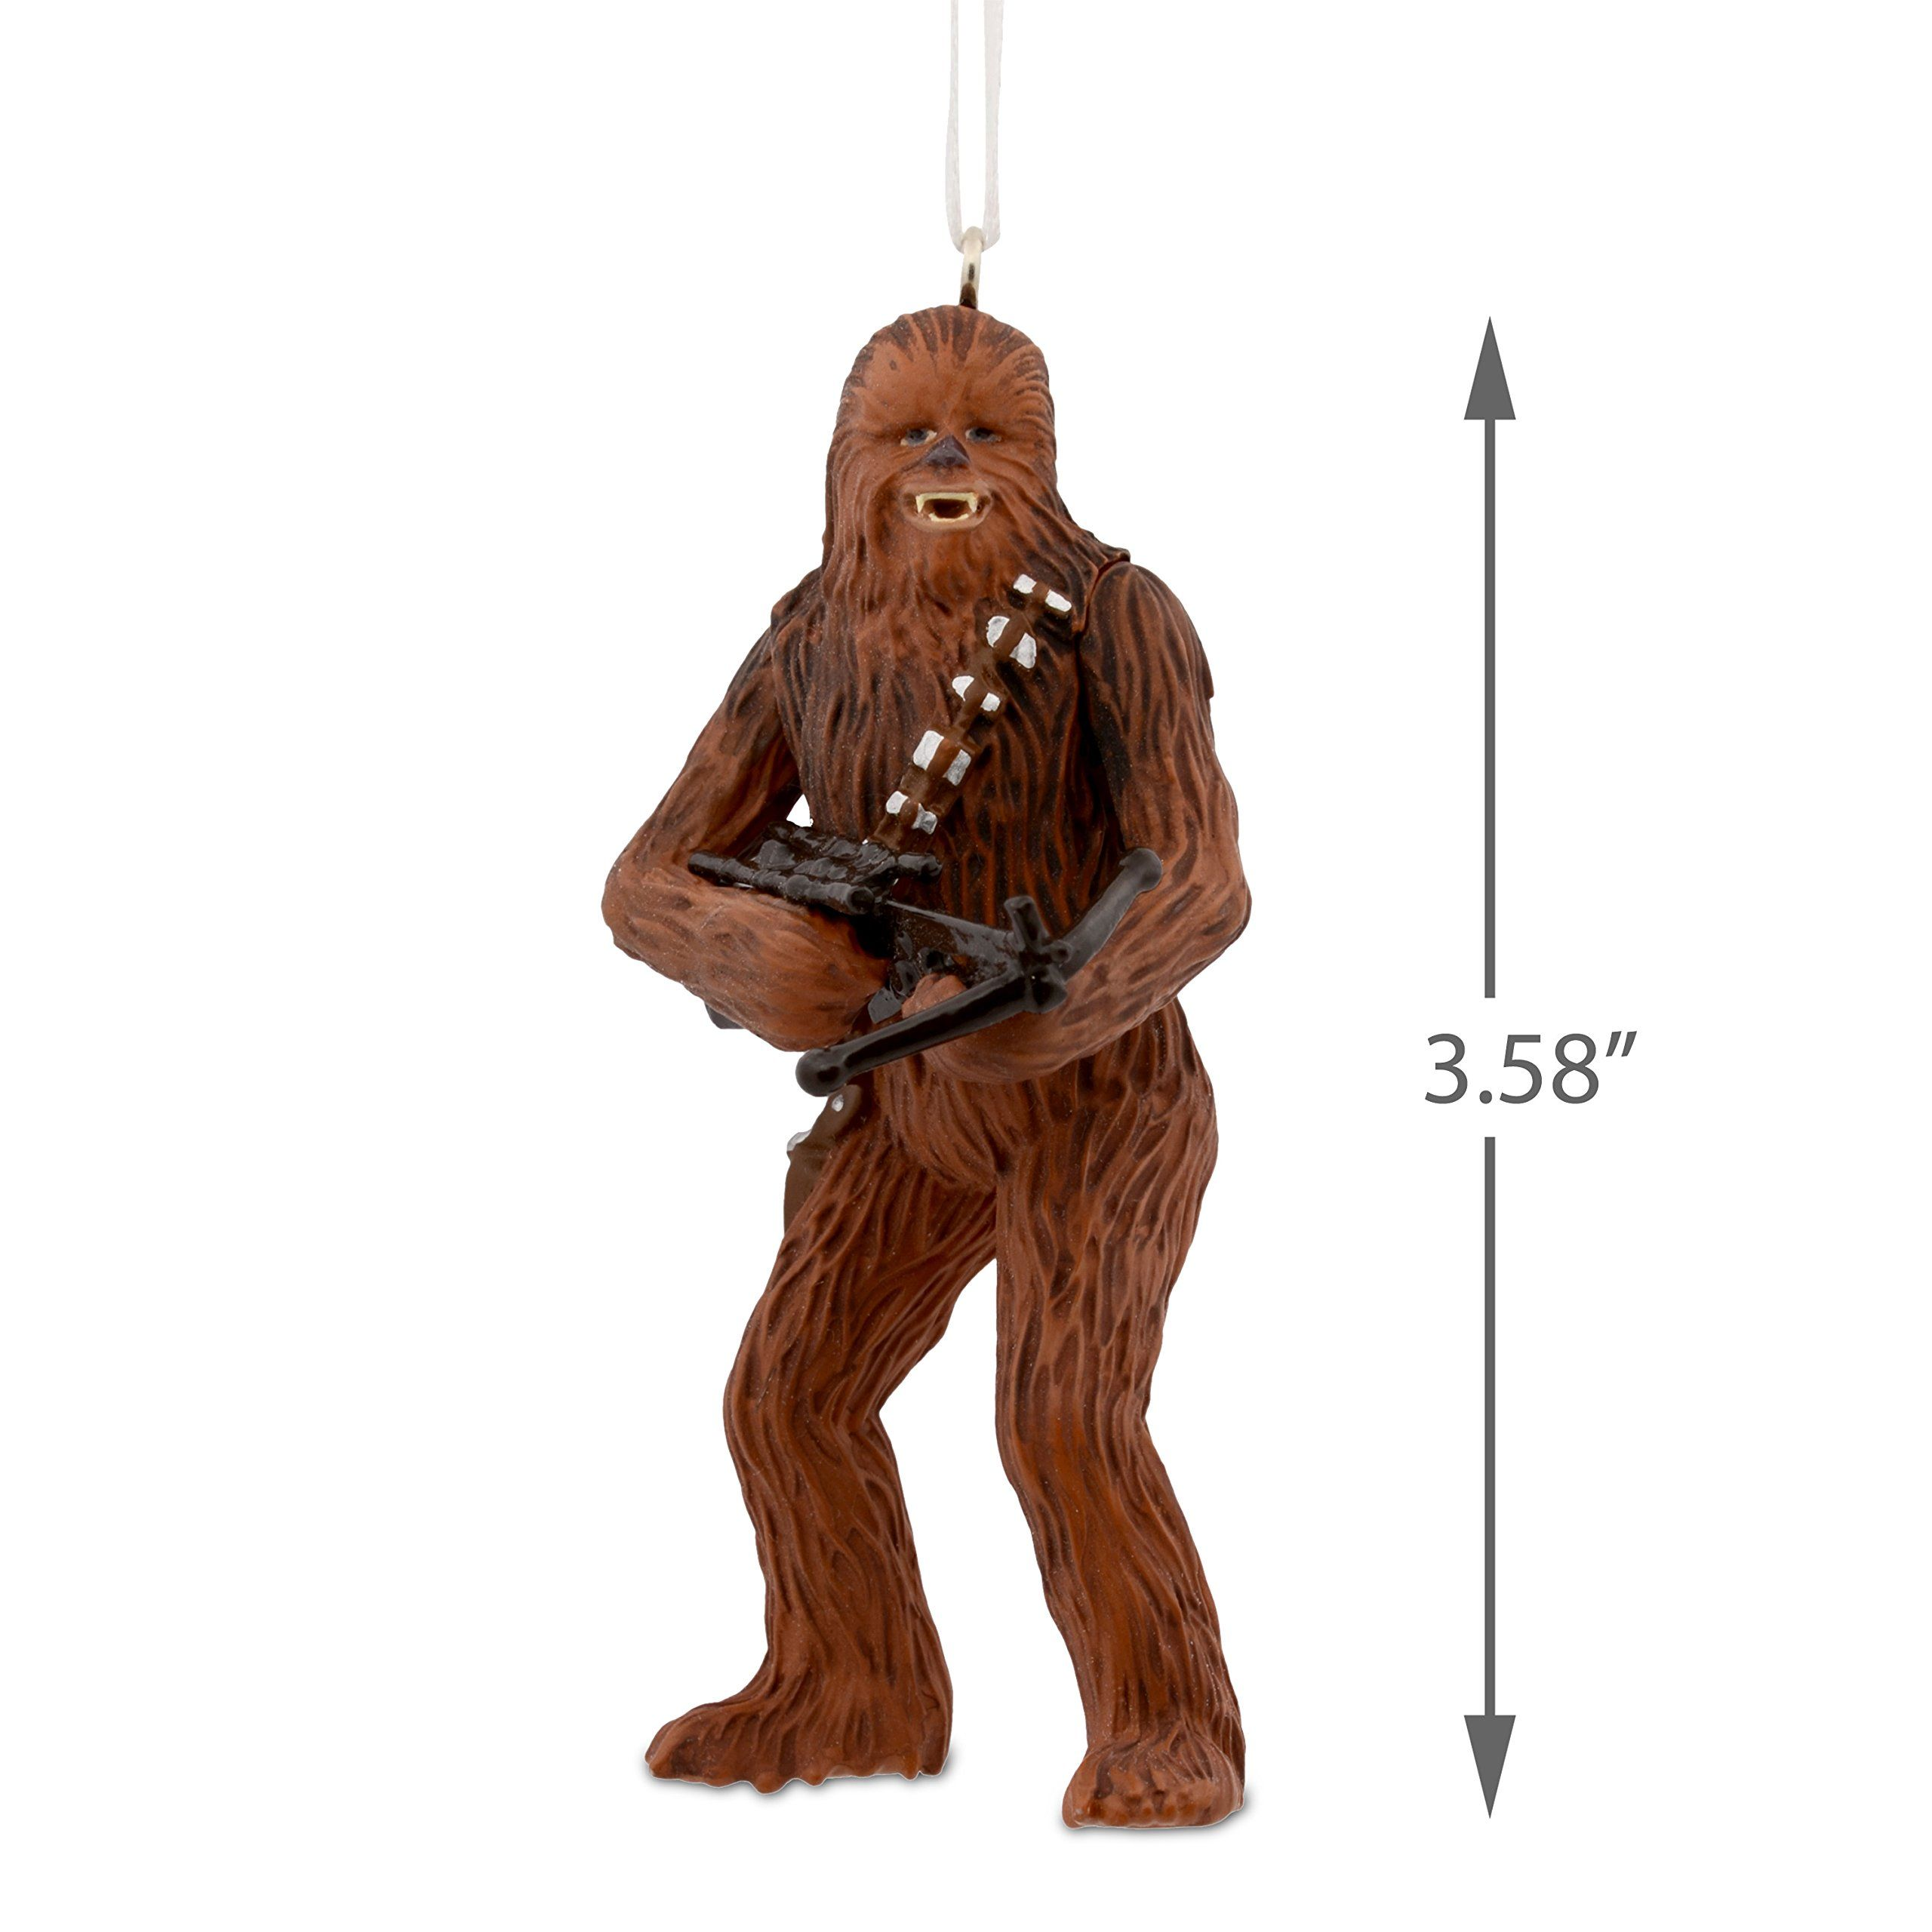 Hallmark Christmas Ornament Star Wars Chewbacca with